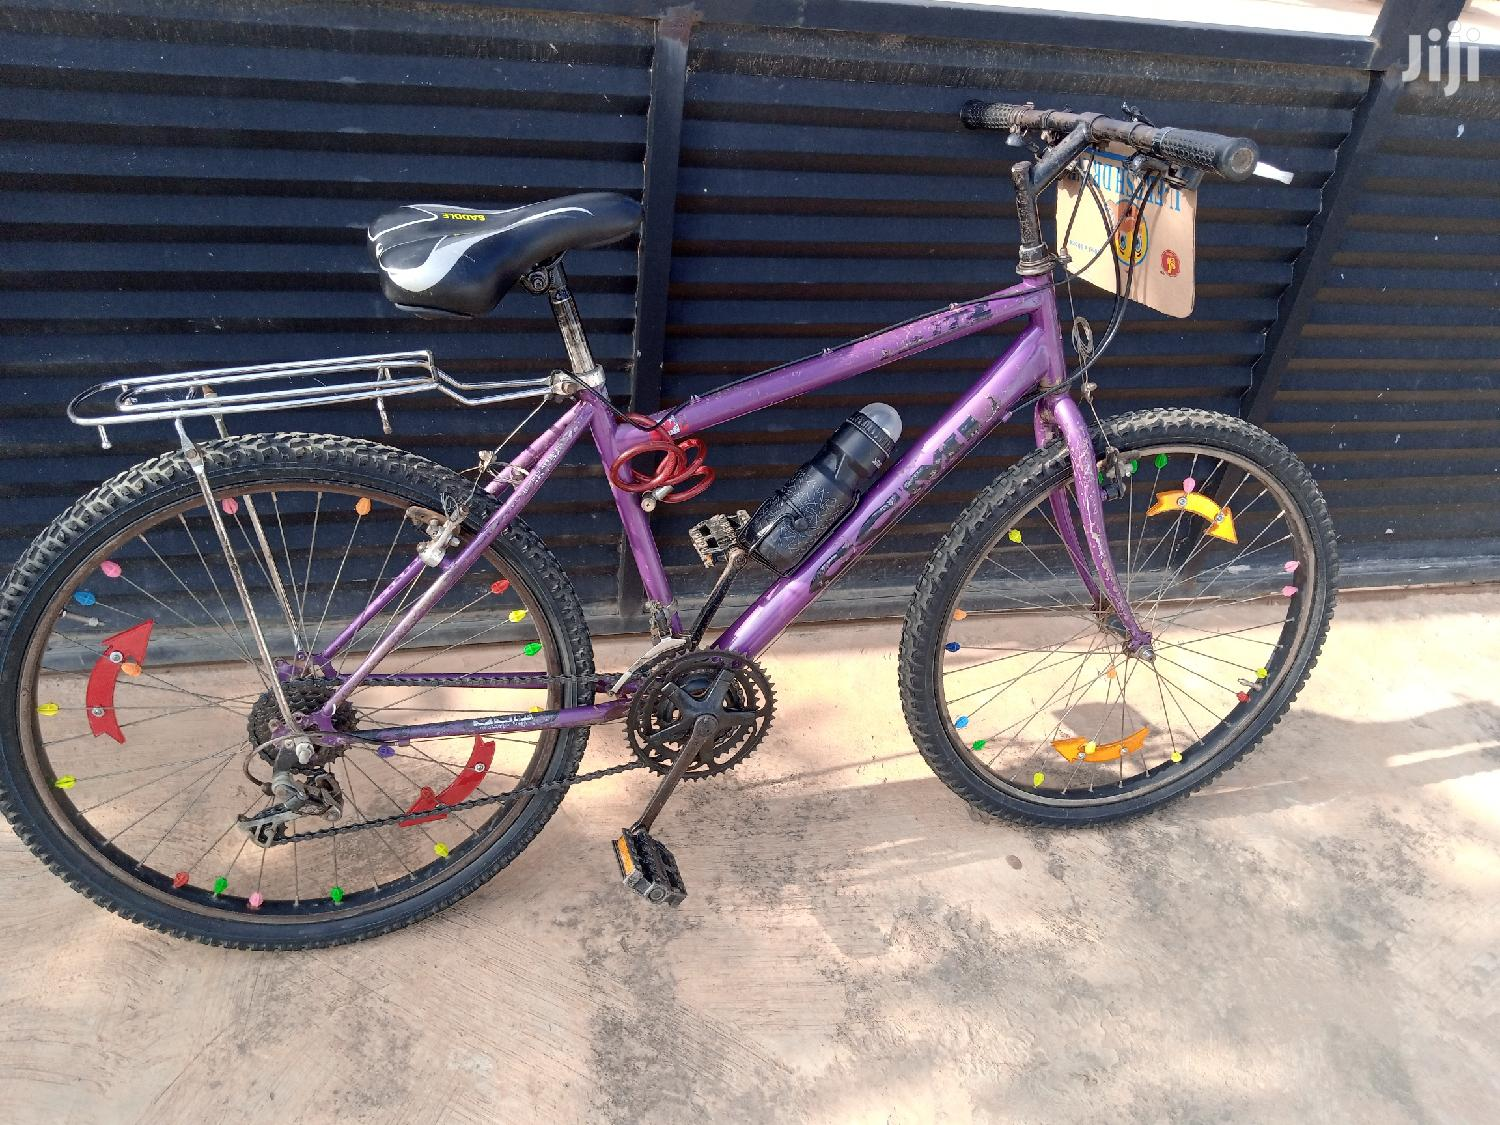 Archive: Slightly Used Bicycle for Sale.